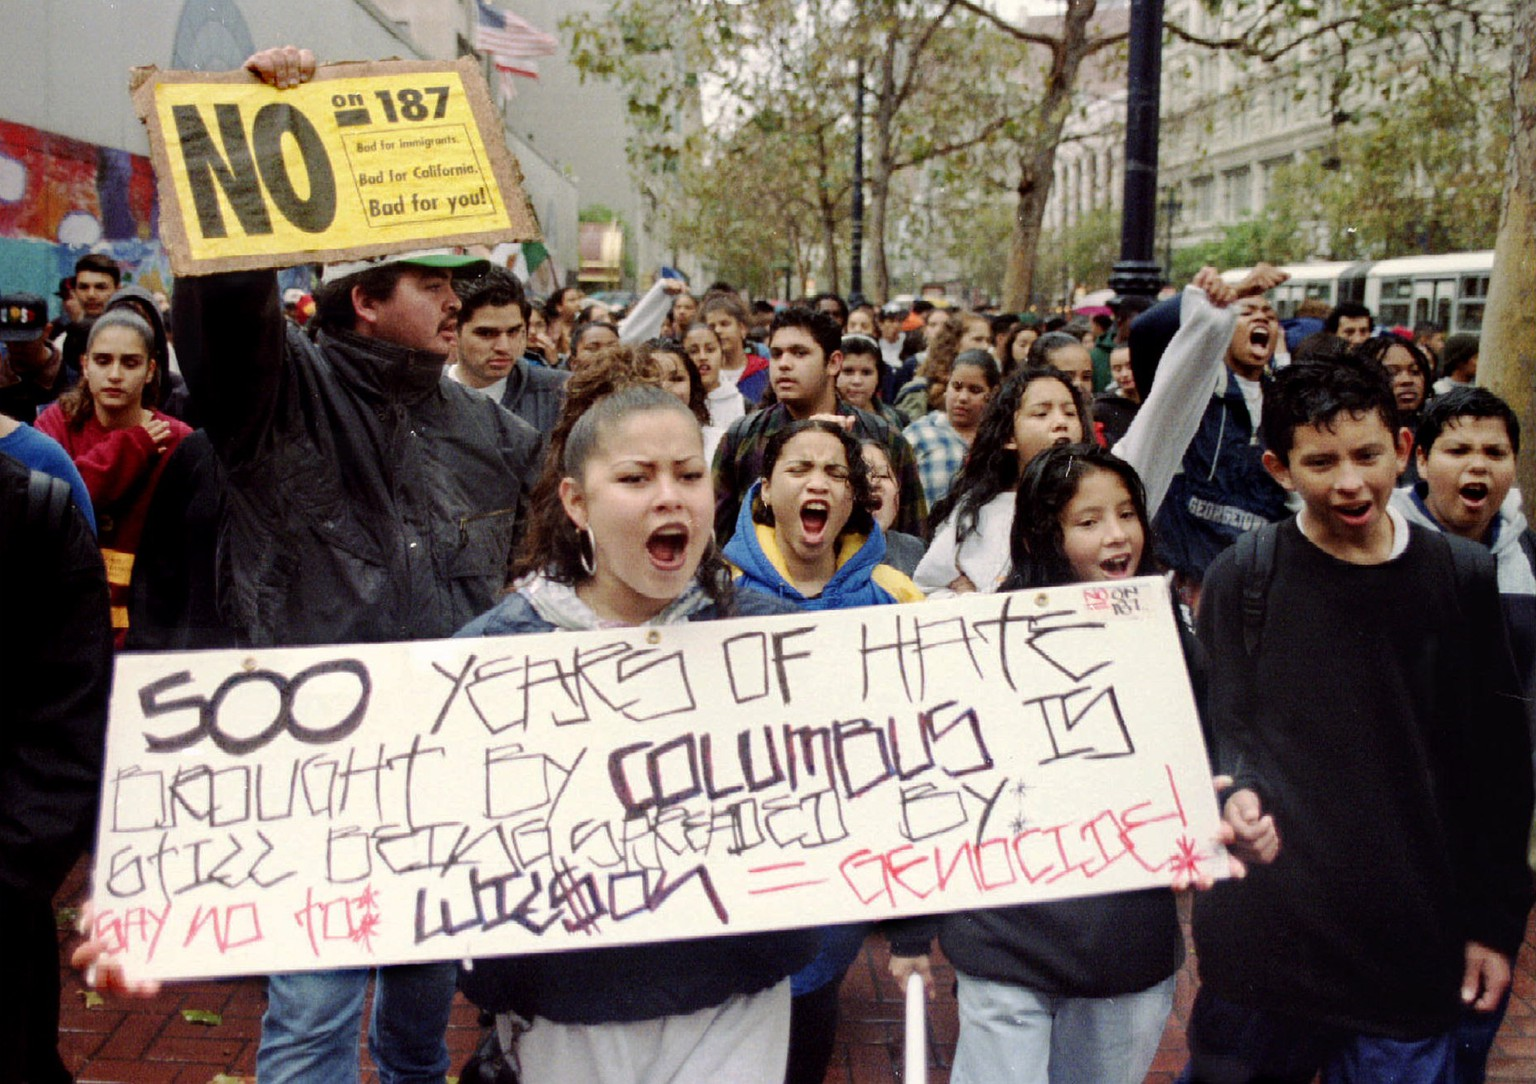 Hundreds of mainly Latino students chant as they march in downtown San Francisco November 9 to protest the passage of Proposition 187. Proposotion 187 approves a sweeping crackdown on illegal immigrants, denying them access to most public services - RTXF4U7